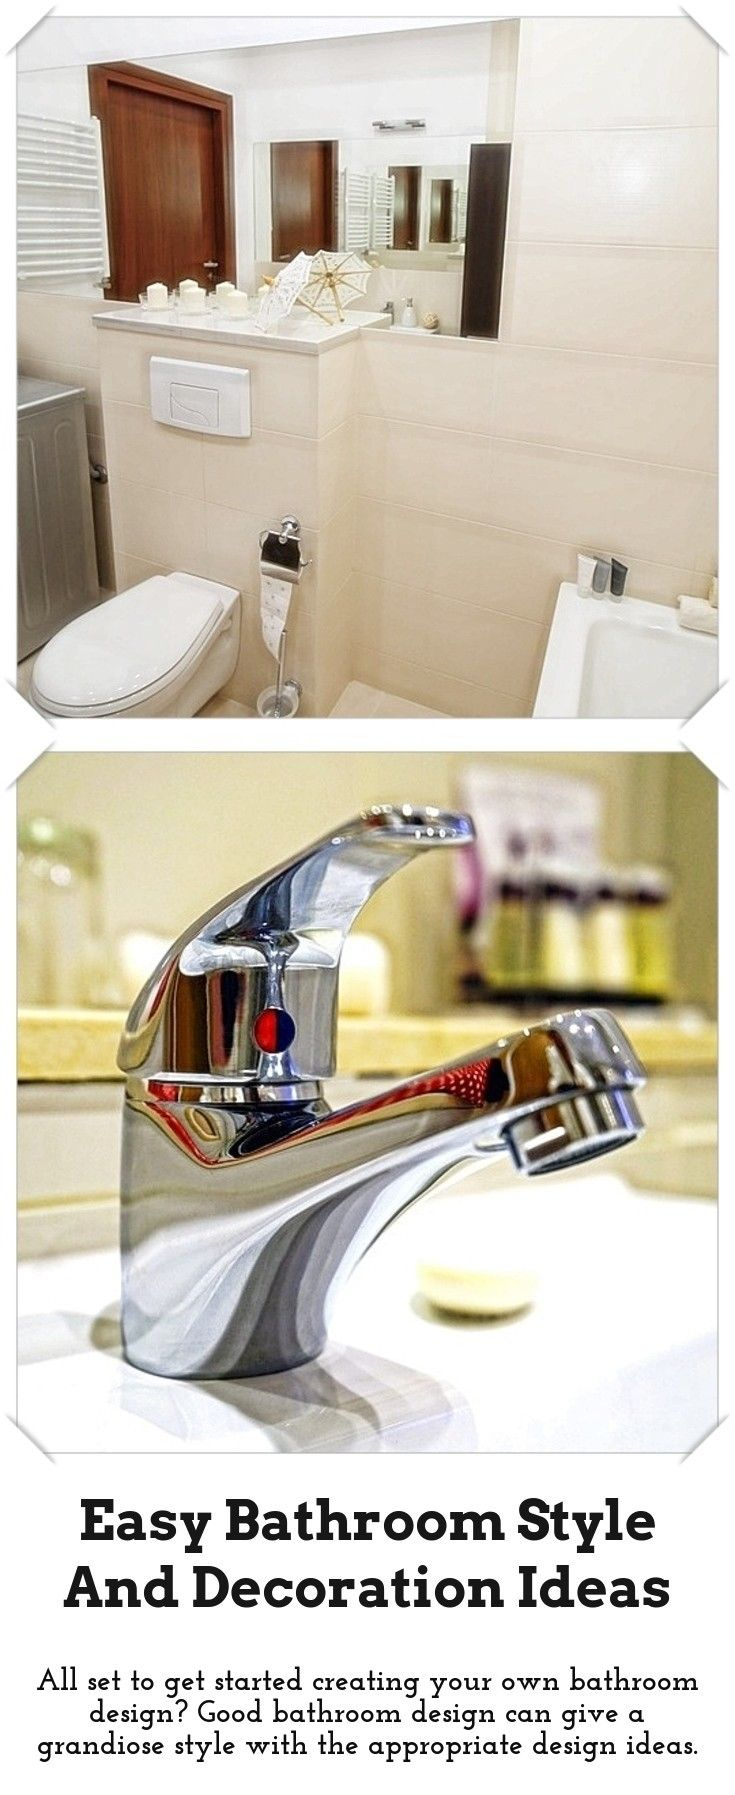 Makeover Your Small Bathroom Within a Budget | Bathroom remodeling ...